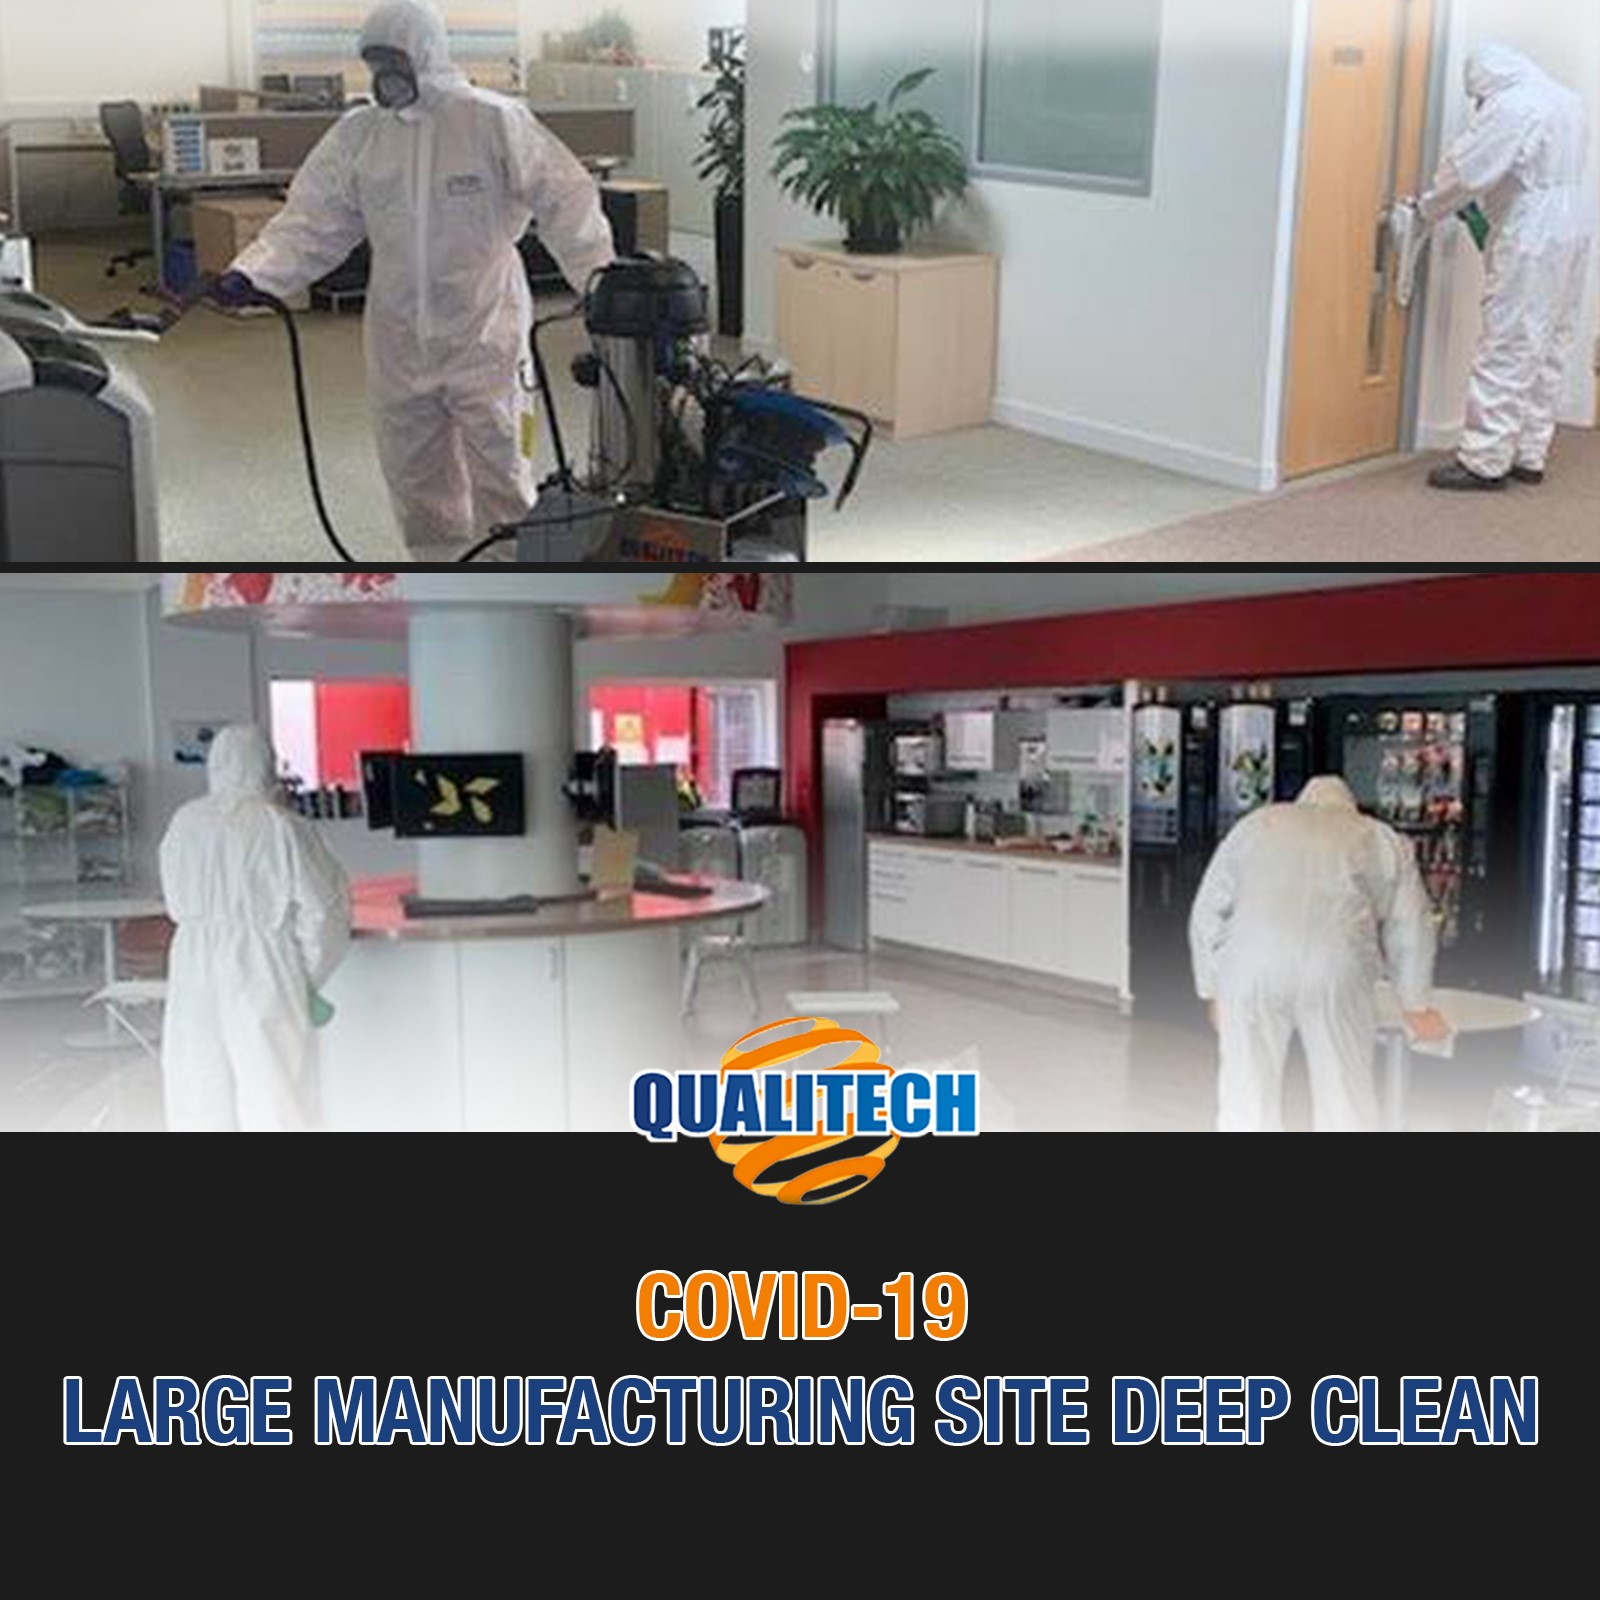 Large Manufacturing deep clean